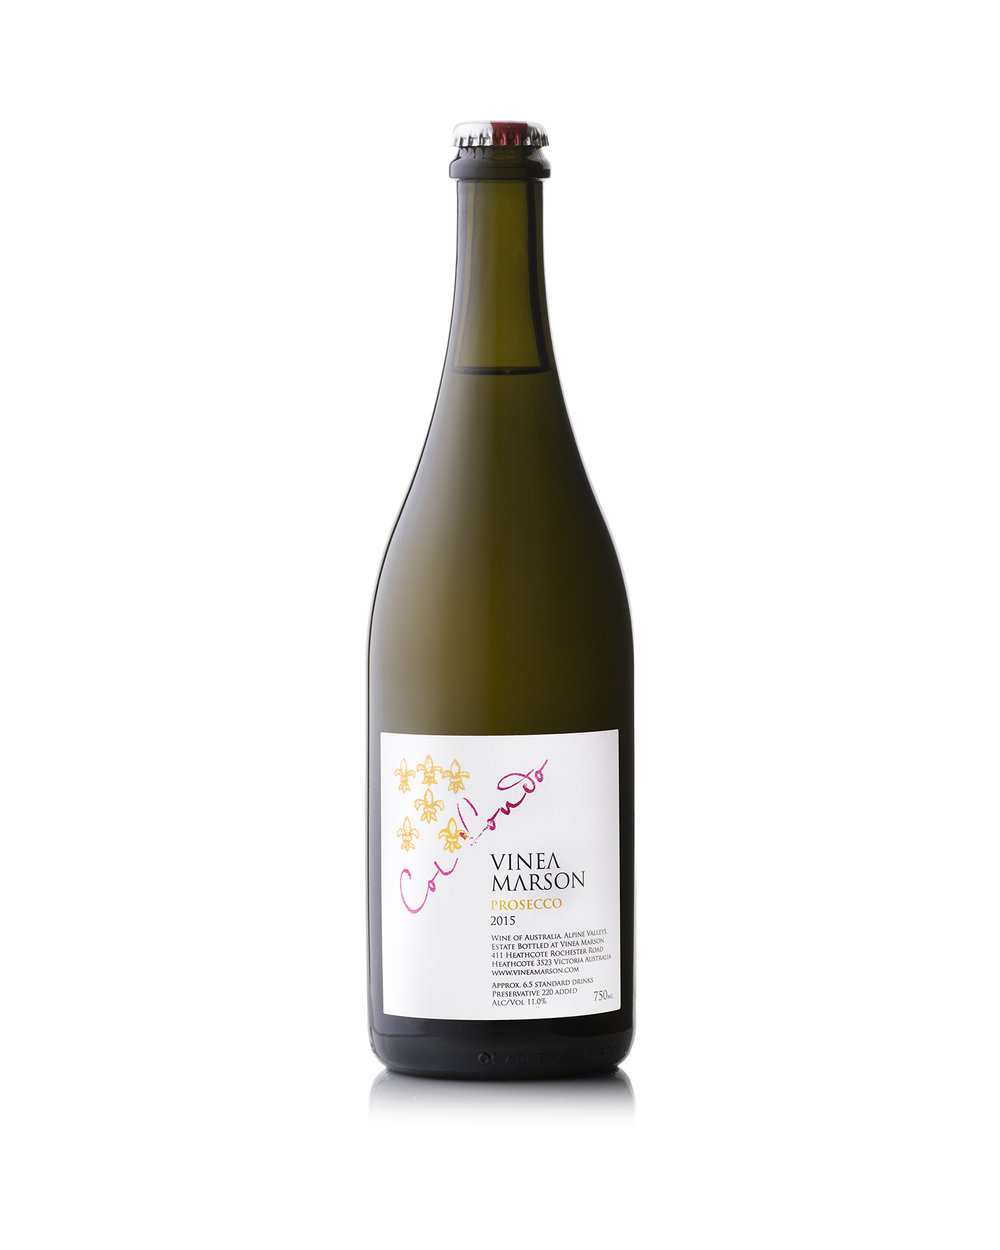 2015 Prosecco Col Fondo  - Experience Prosecco as it was traditionally made (before the late 19th century that is)! Unlike its fruitier and more floral mainstream counterpart, the col fondo does not undergo disgorgement and dosage so that the lees remain in bottle. The resulting cloudy wine is full of savoury aromatics and pleasant bread characters. On the nose aromas of lemon and fresh granny-smith apples are evident, followed by lemon tart characters alongside notes of toasted brioche on the palate. The balance of crisp acidity and nutty characters on the finish make this wine the perfect accompaniment for the salty flavours on an antipasto platter – with meats such as Veneto salumi or cappocollo. Available exclusively at the Cellar Door and in extremely limited quantities – order now to avoid missing out!